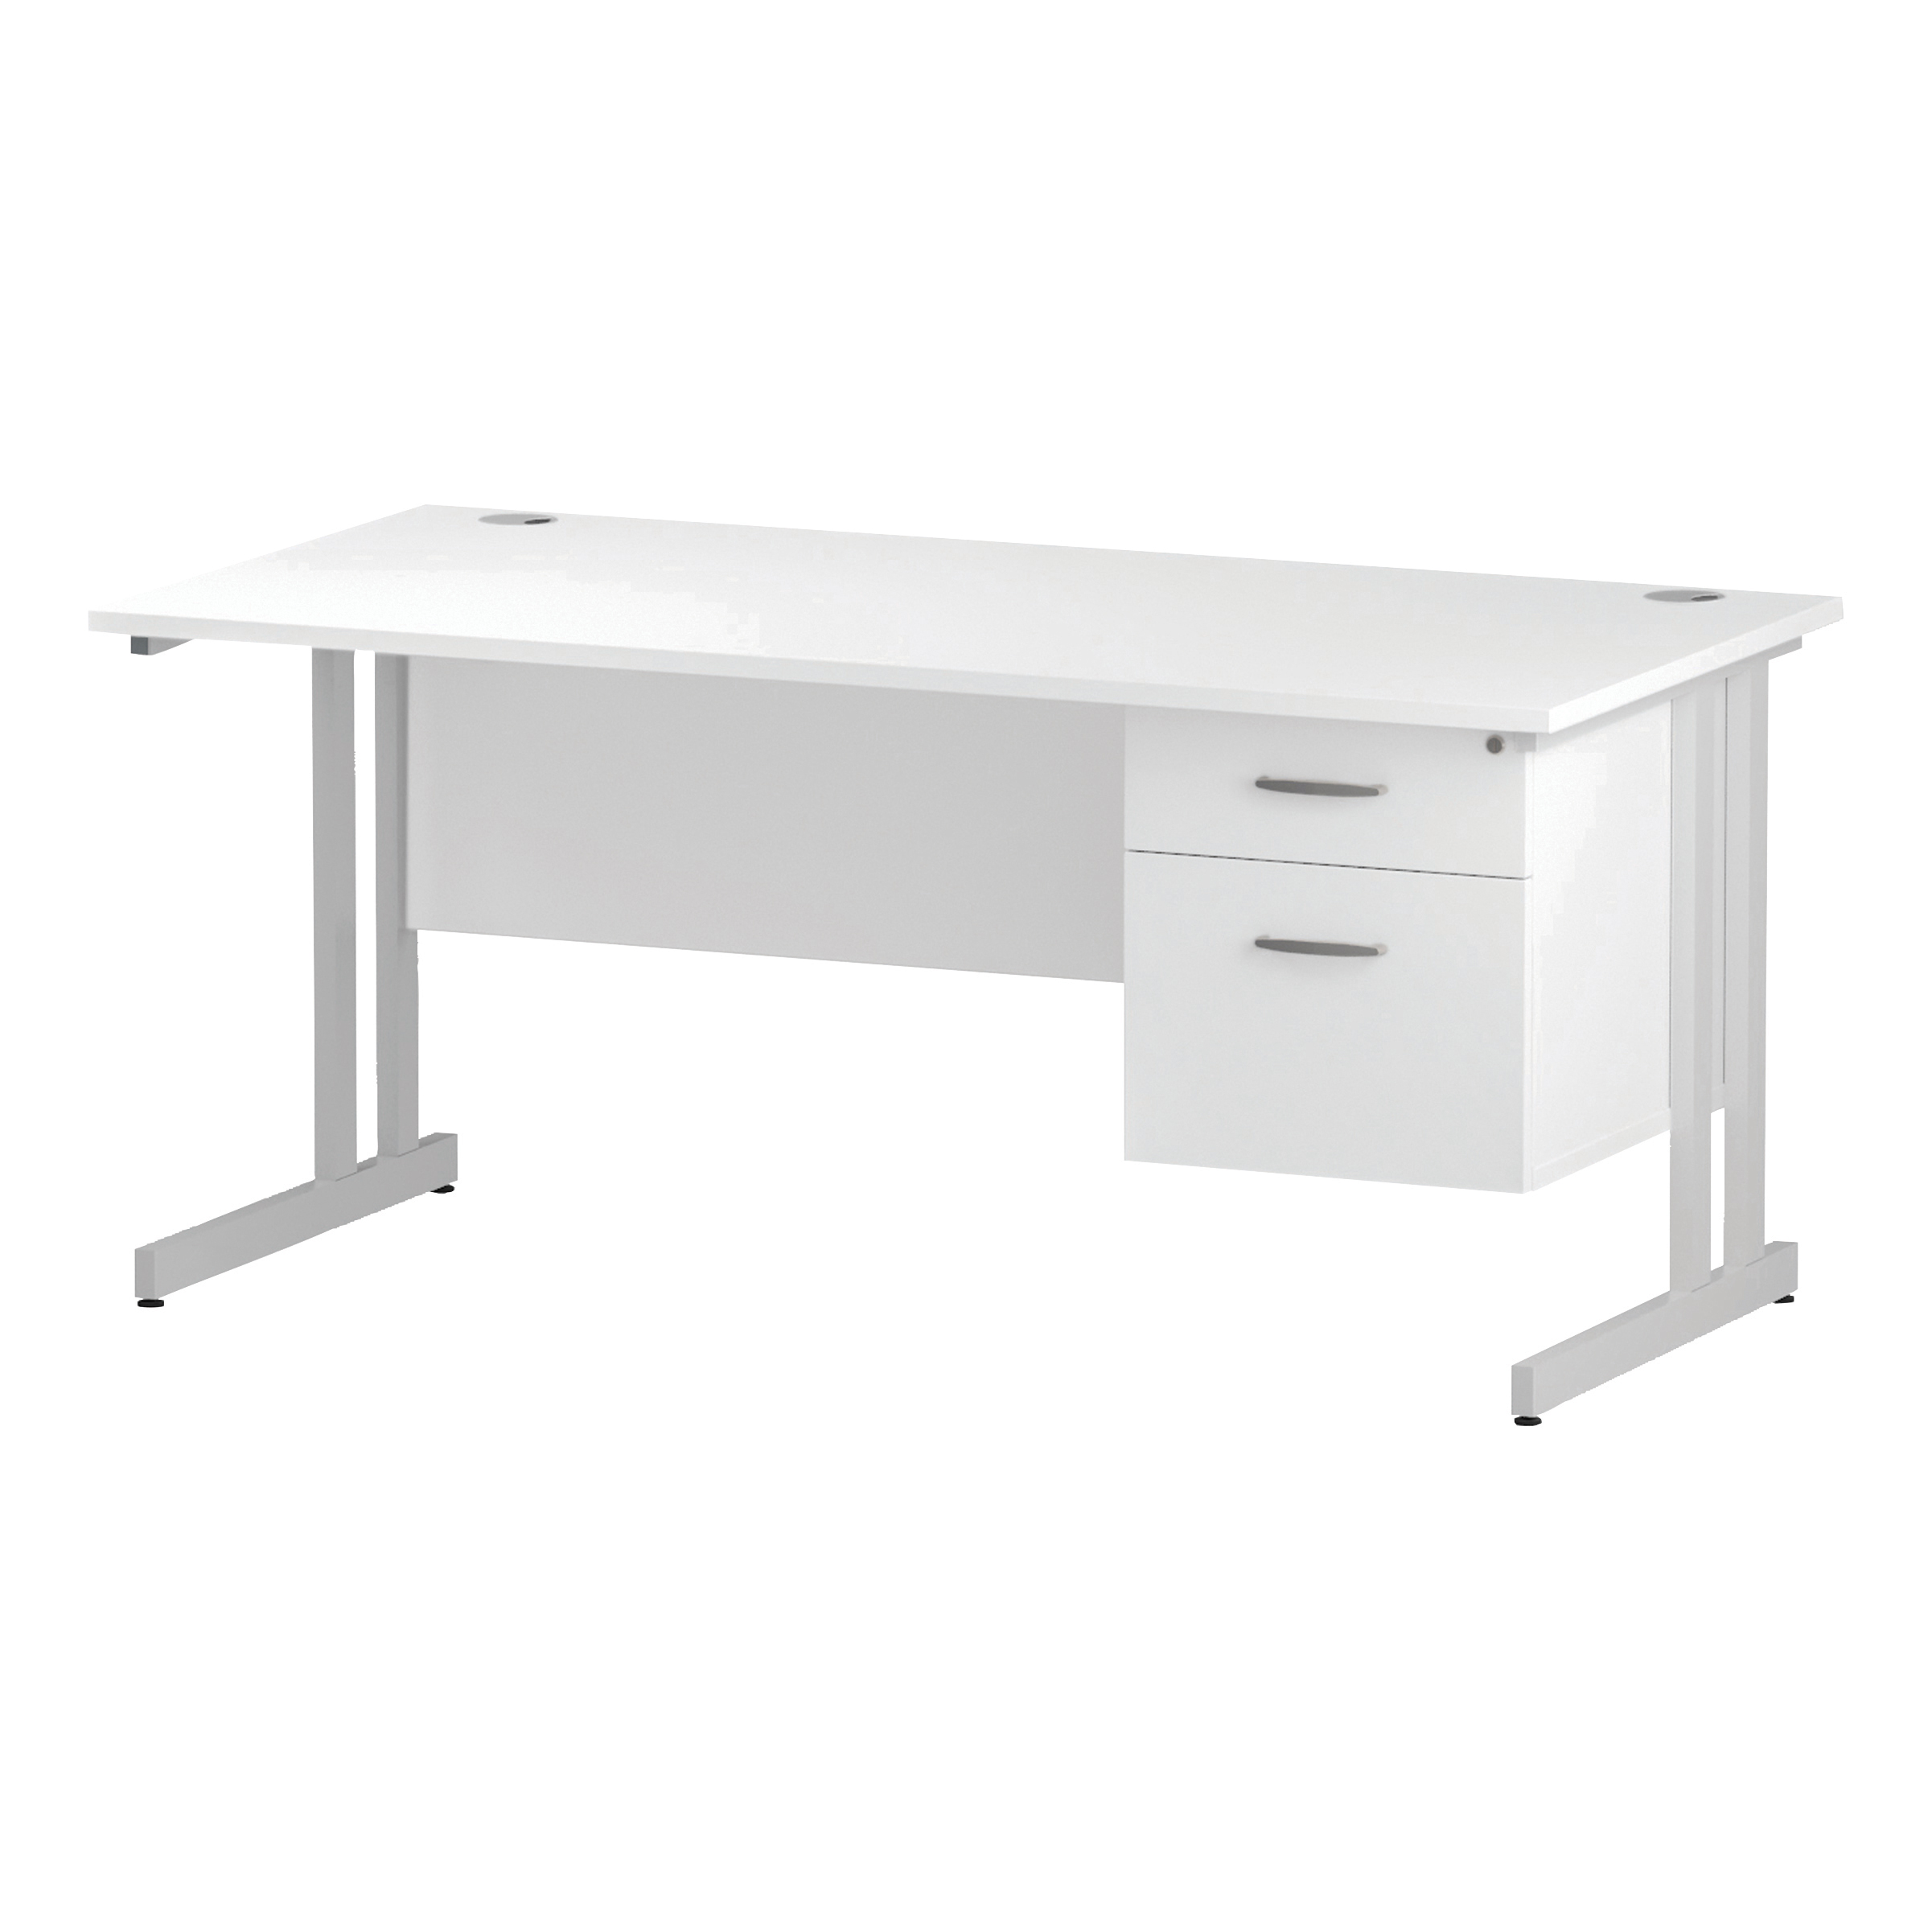 Trexus Rectangular Desk White Cantilever Leg 1600x800mm Fixed Pedestal 2 Drawers White Ref I002211